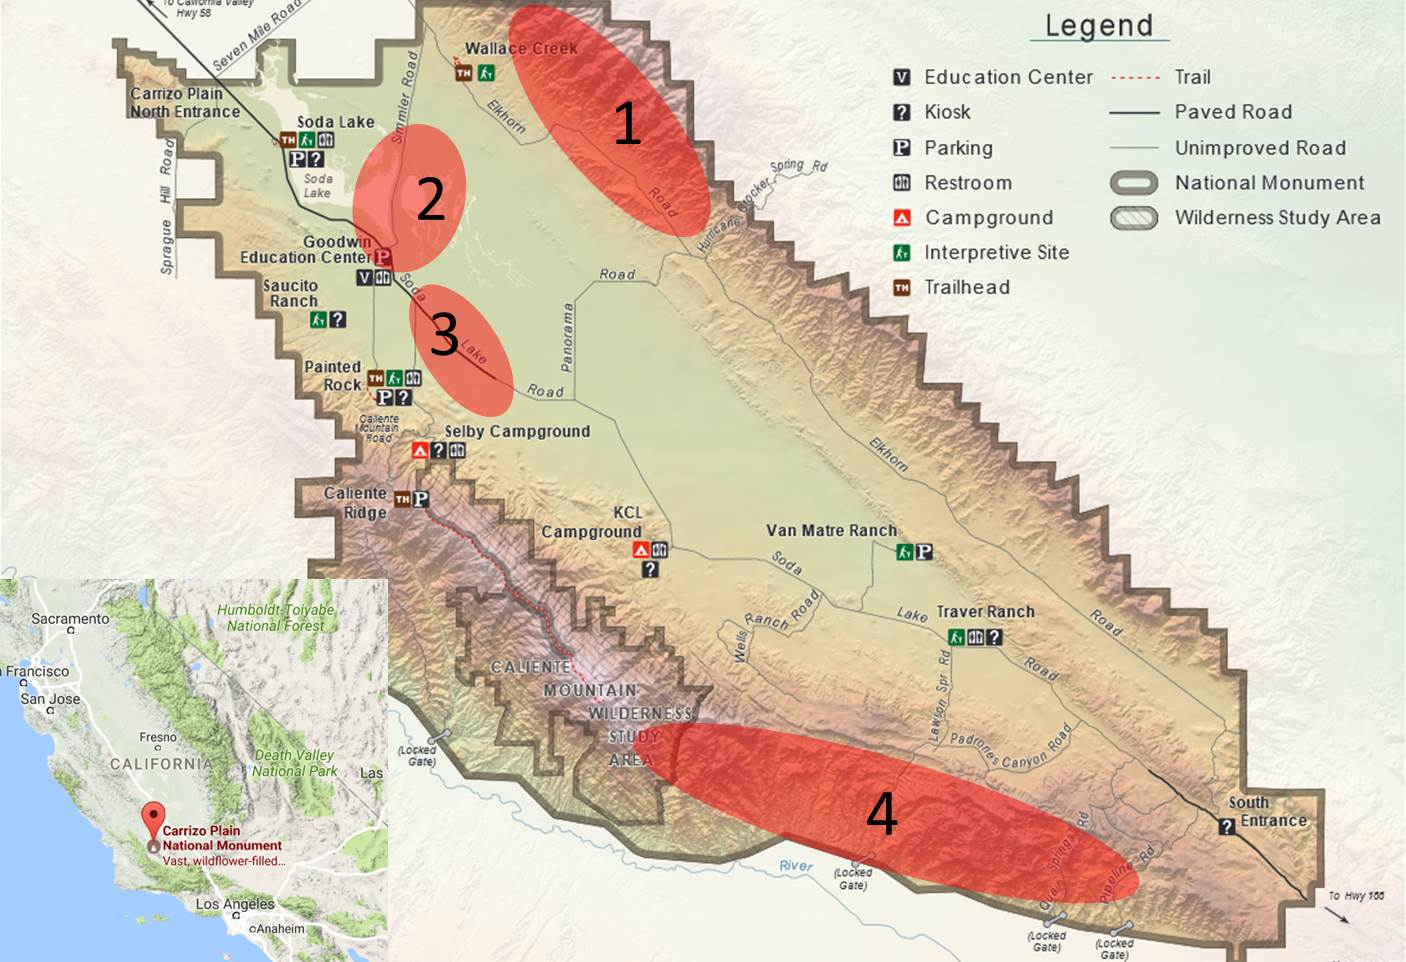 Bureau of Land Management map of Carrizo Plain with 4 areas of interest for wildflower viewing highlighted. Zone 1 is the Temblor Range, Zone 2 is Soda Lake Area, Zone 3 is the roadside near Selby Campground and Zone 4 is the southern extent of the Caliente Range.